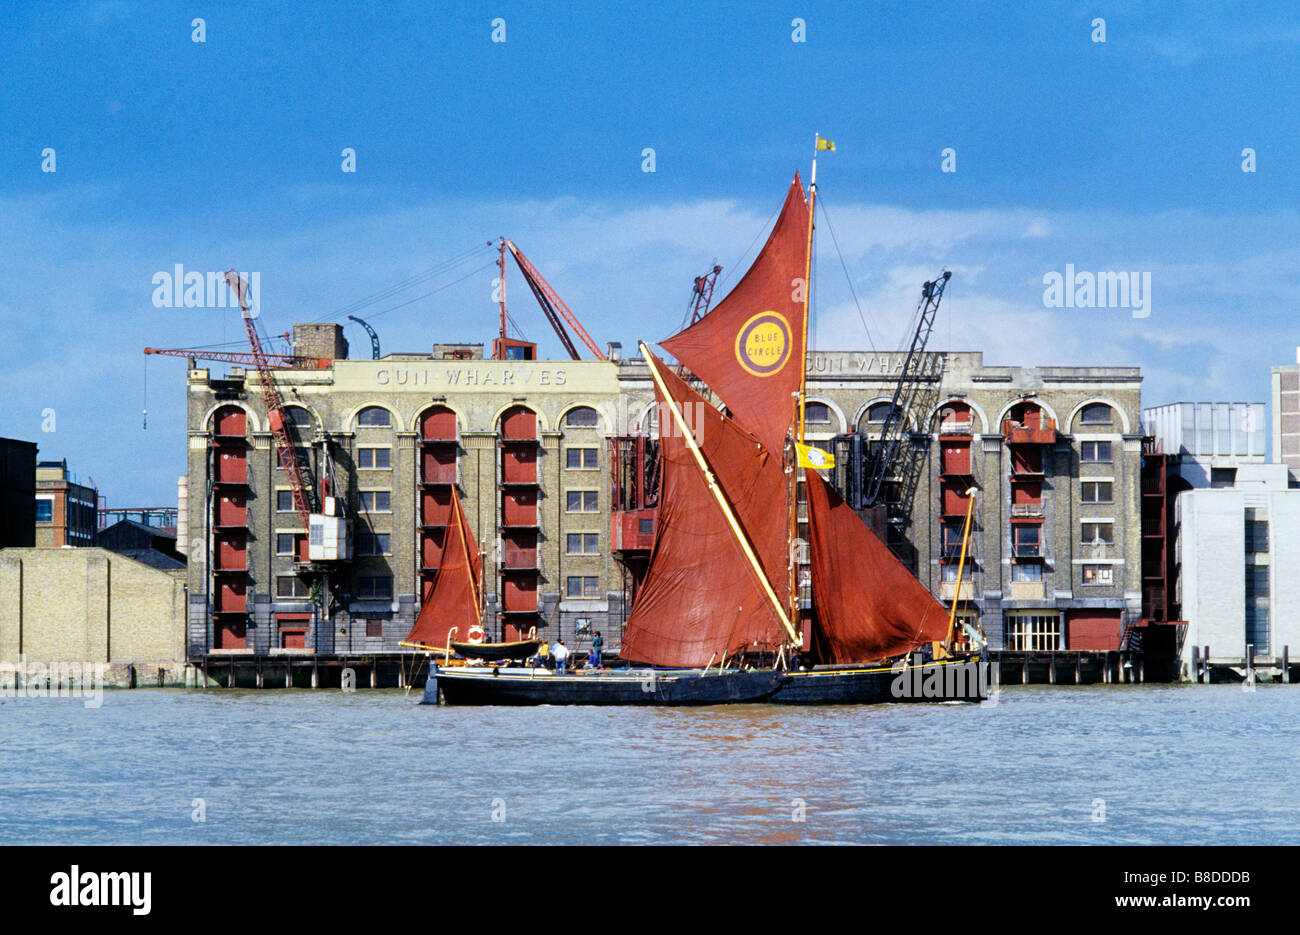 London,RiverThamesBarge,TheRed Ochre sails evoke the past.Now there is a revival as people avoid the stress of modern - Stock Image